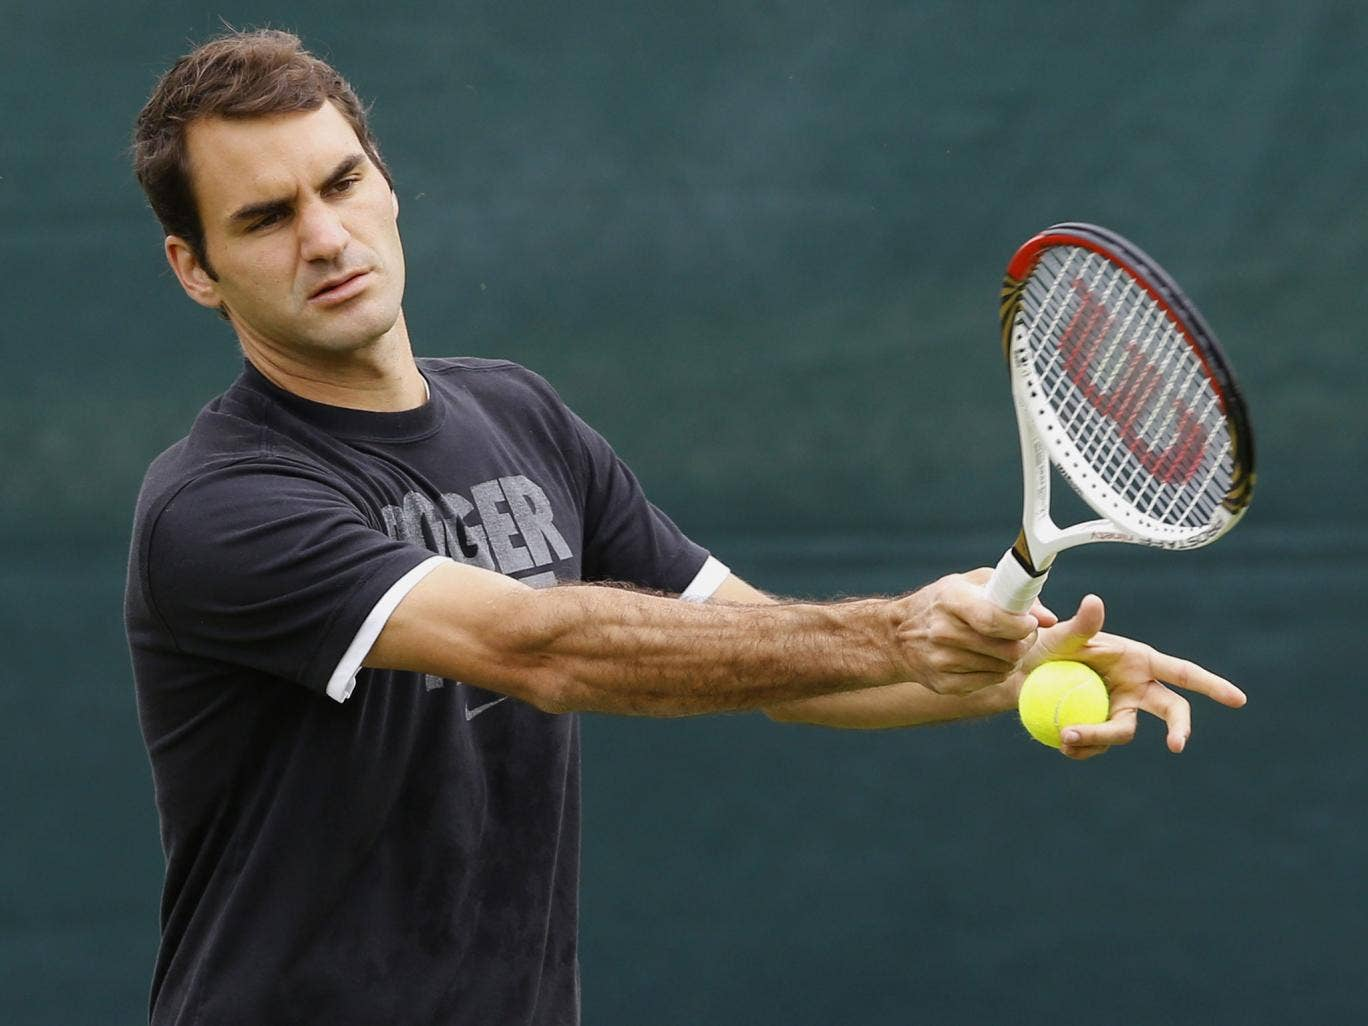 Defending Wimbledon champion, the Swiss Roger Federer plays a return during a training session